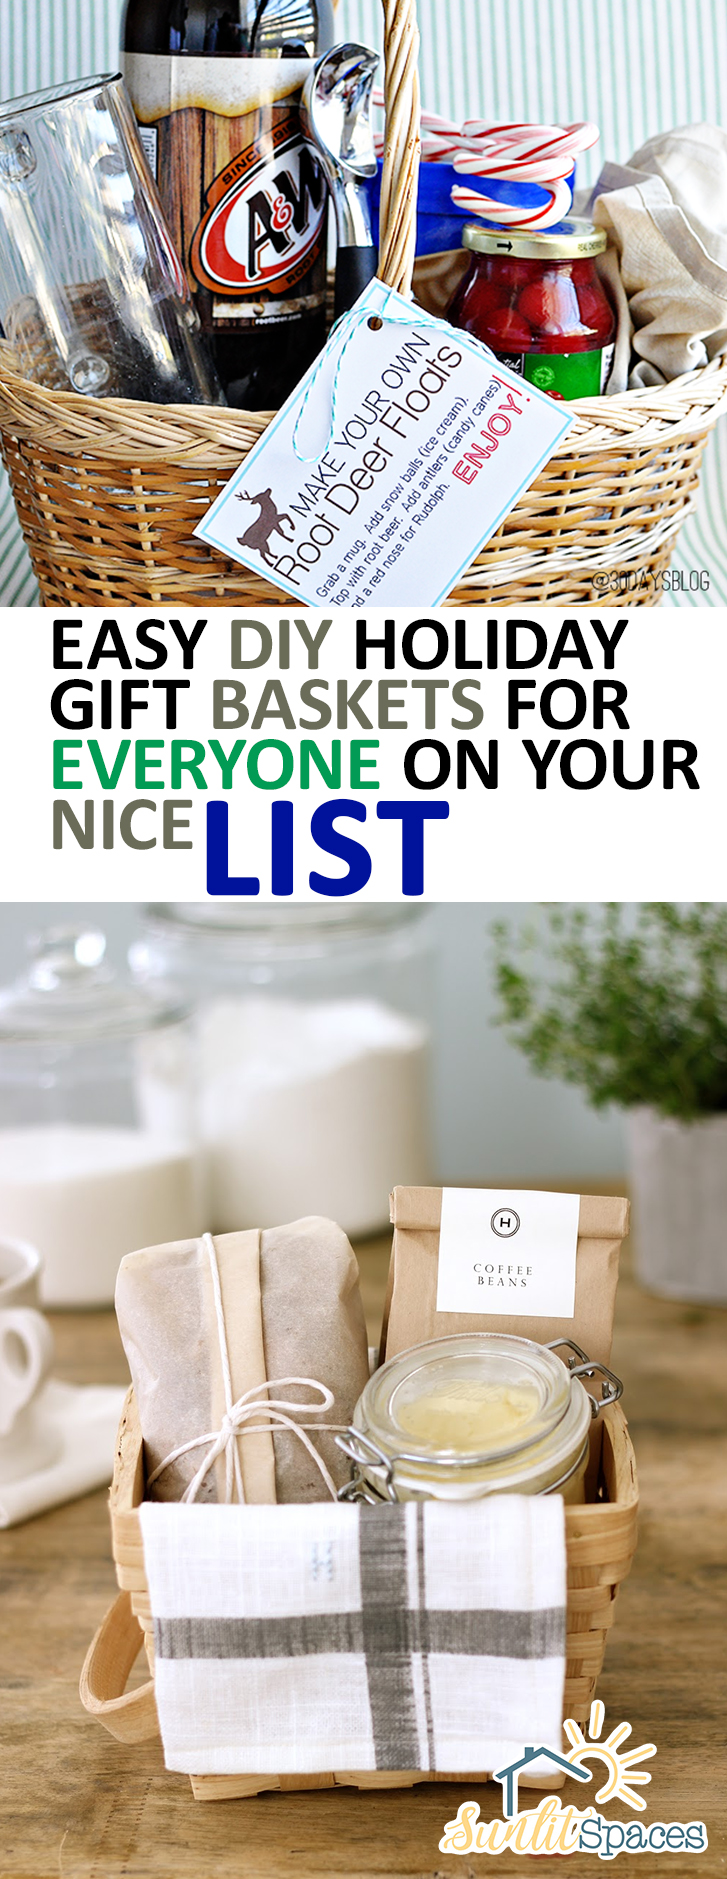 Easy DIY Holiday Gift Baskets for EVERYONE on Your Nice List -